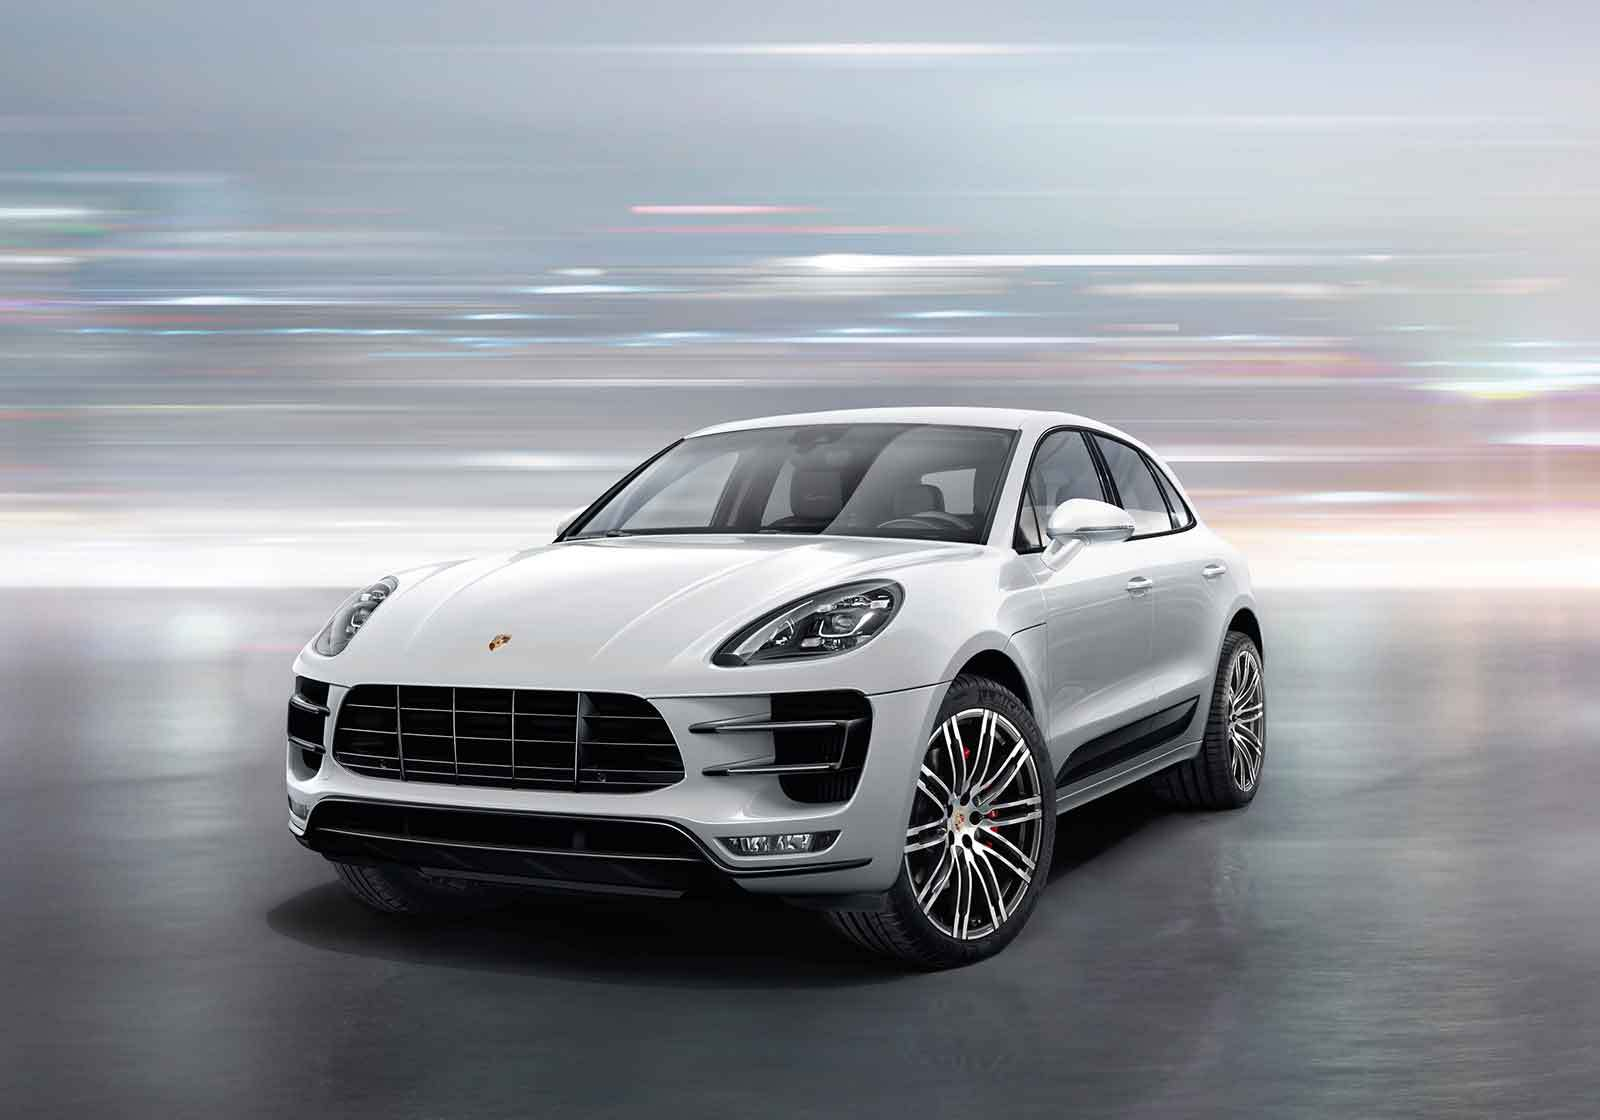 Porsche Macan Turbo upgrades